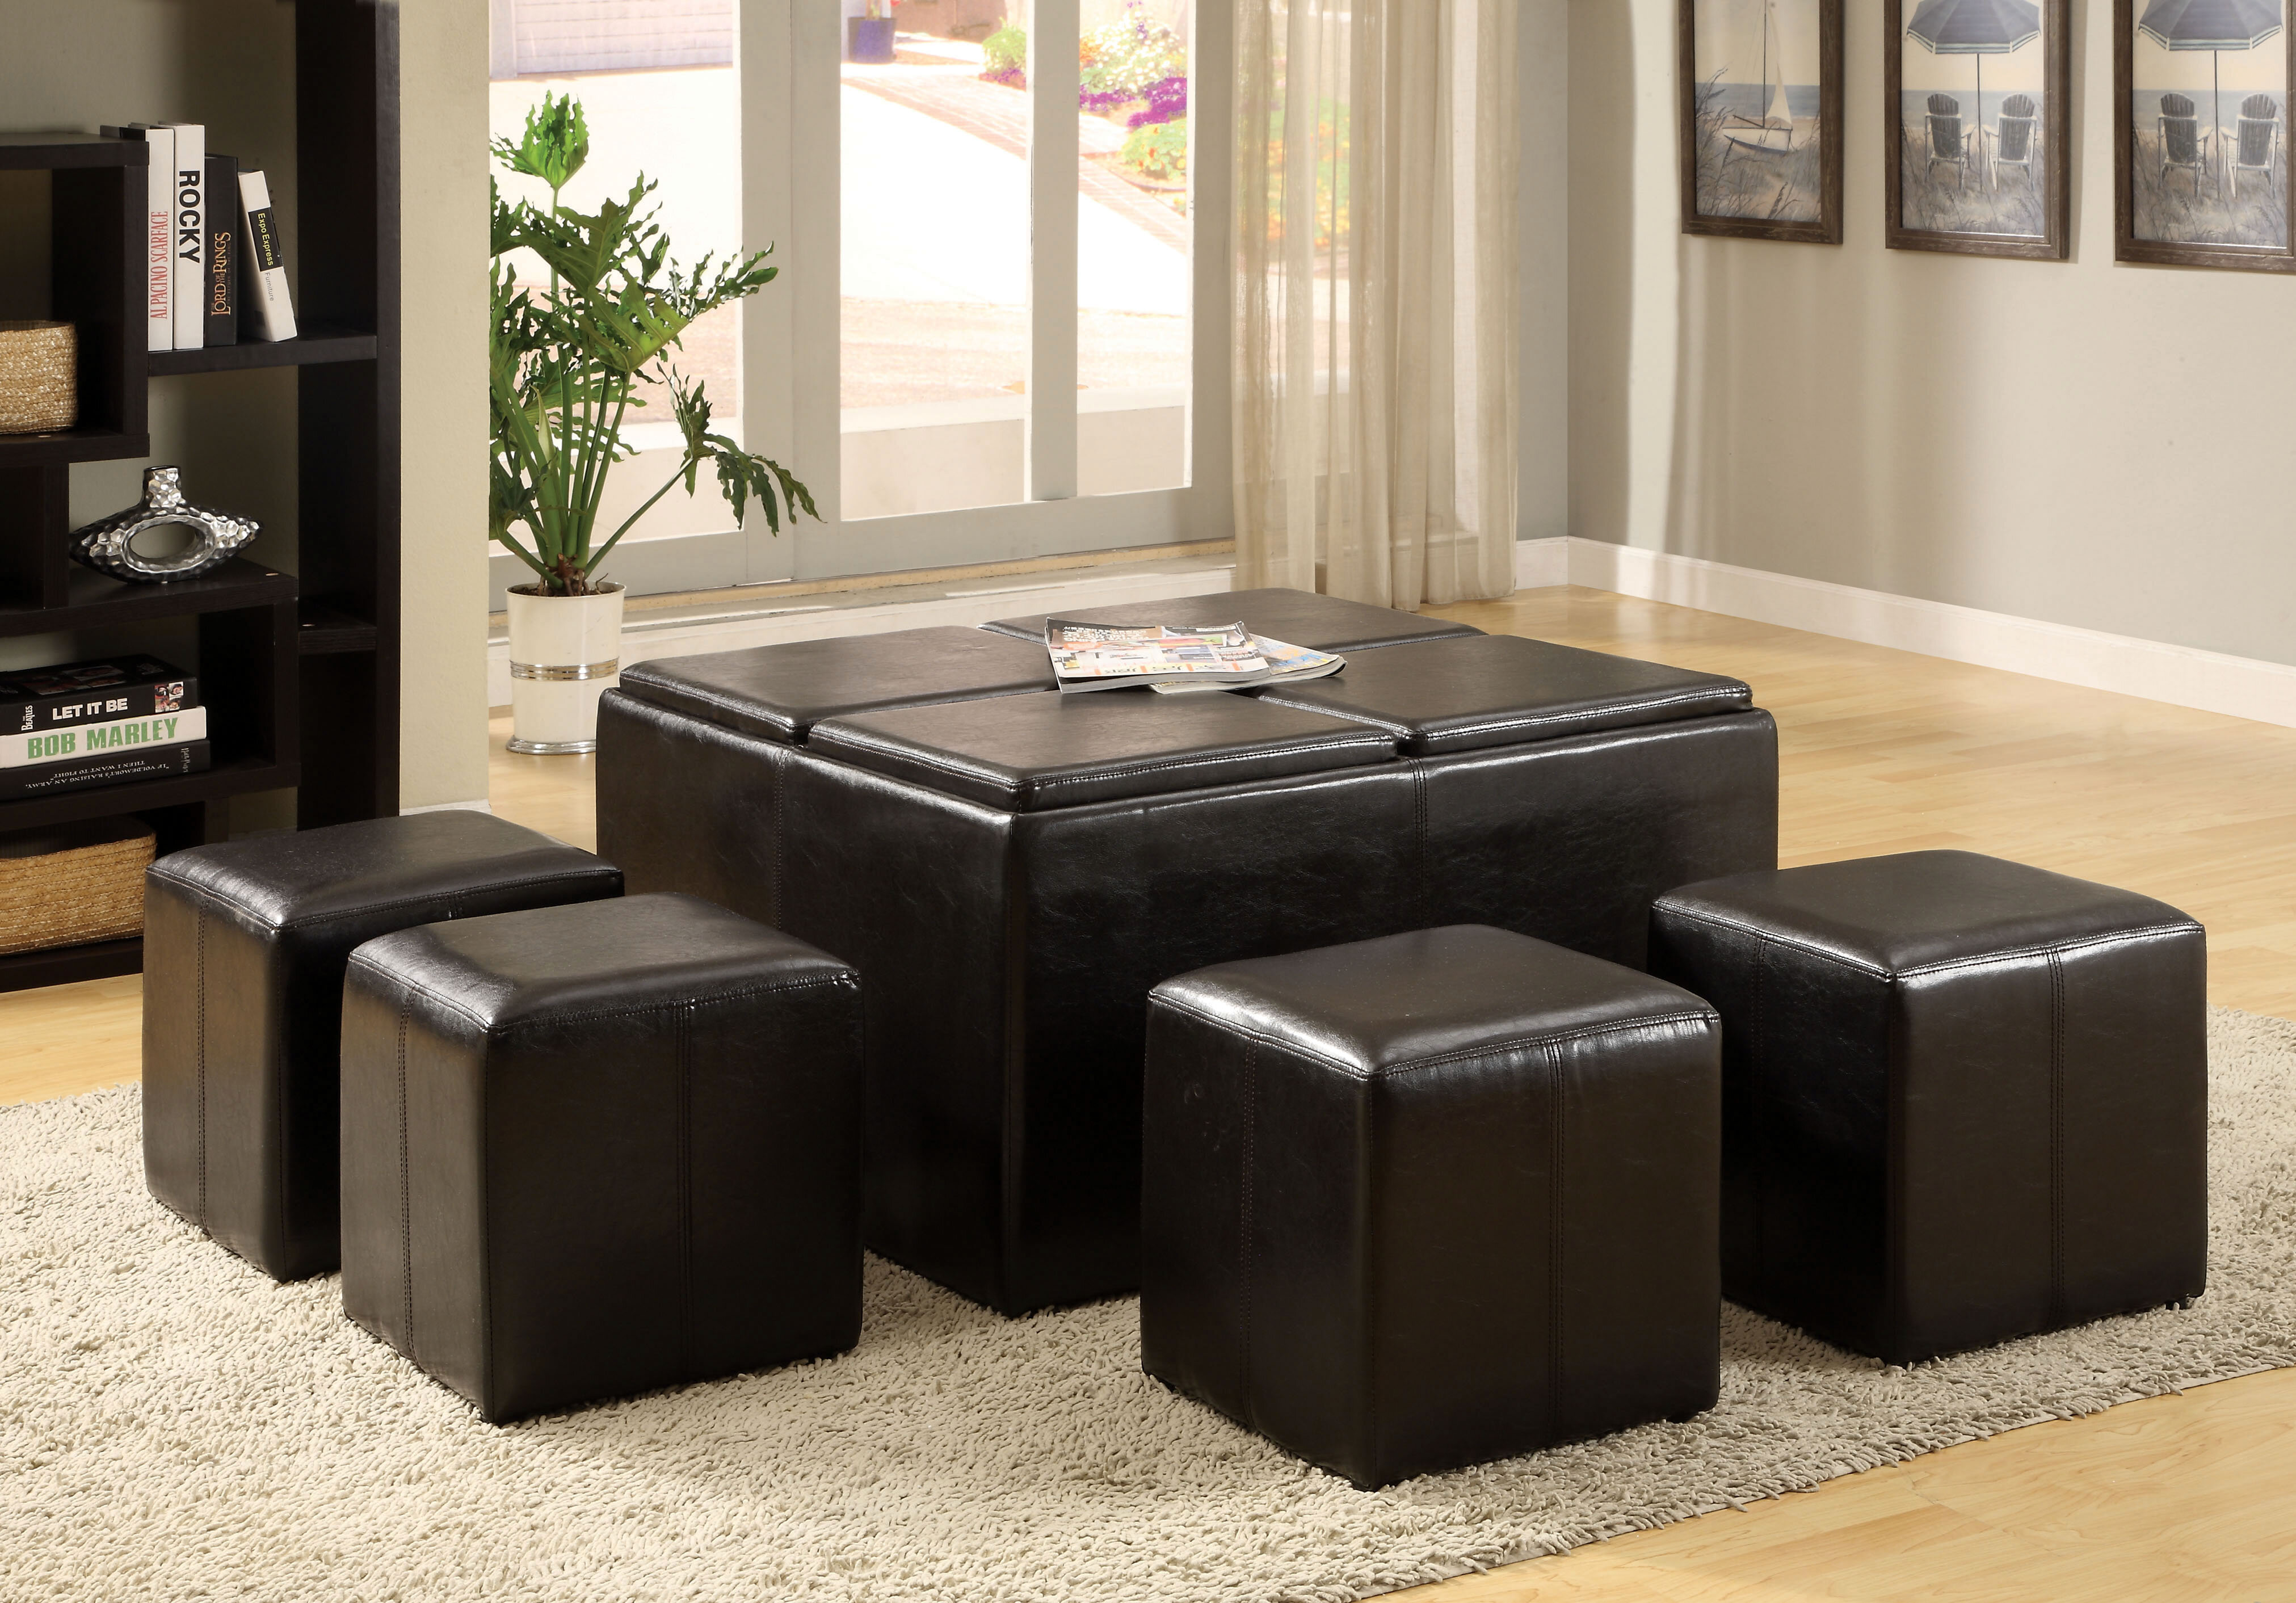 Darby Home Co Turner 5 Piece Coffee Table Ottoman Set Reviews Wayfair